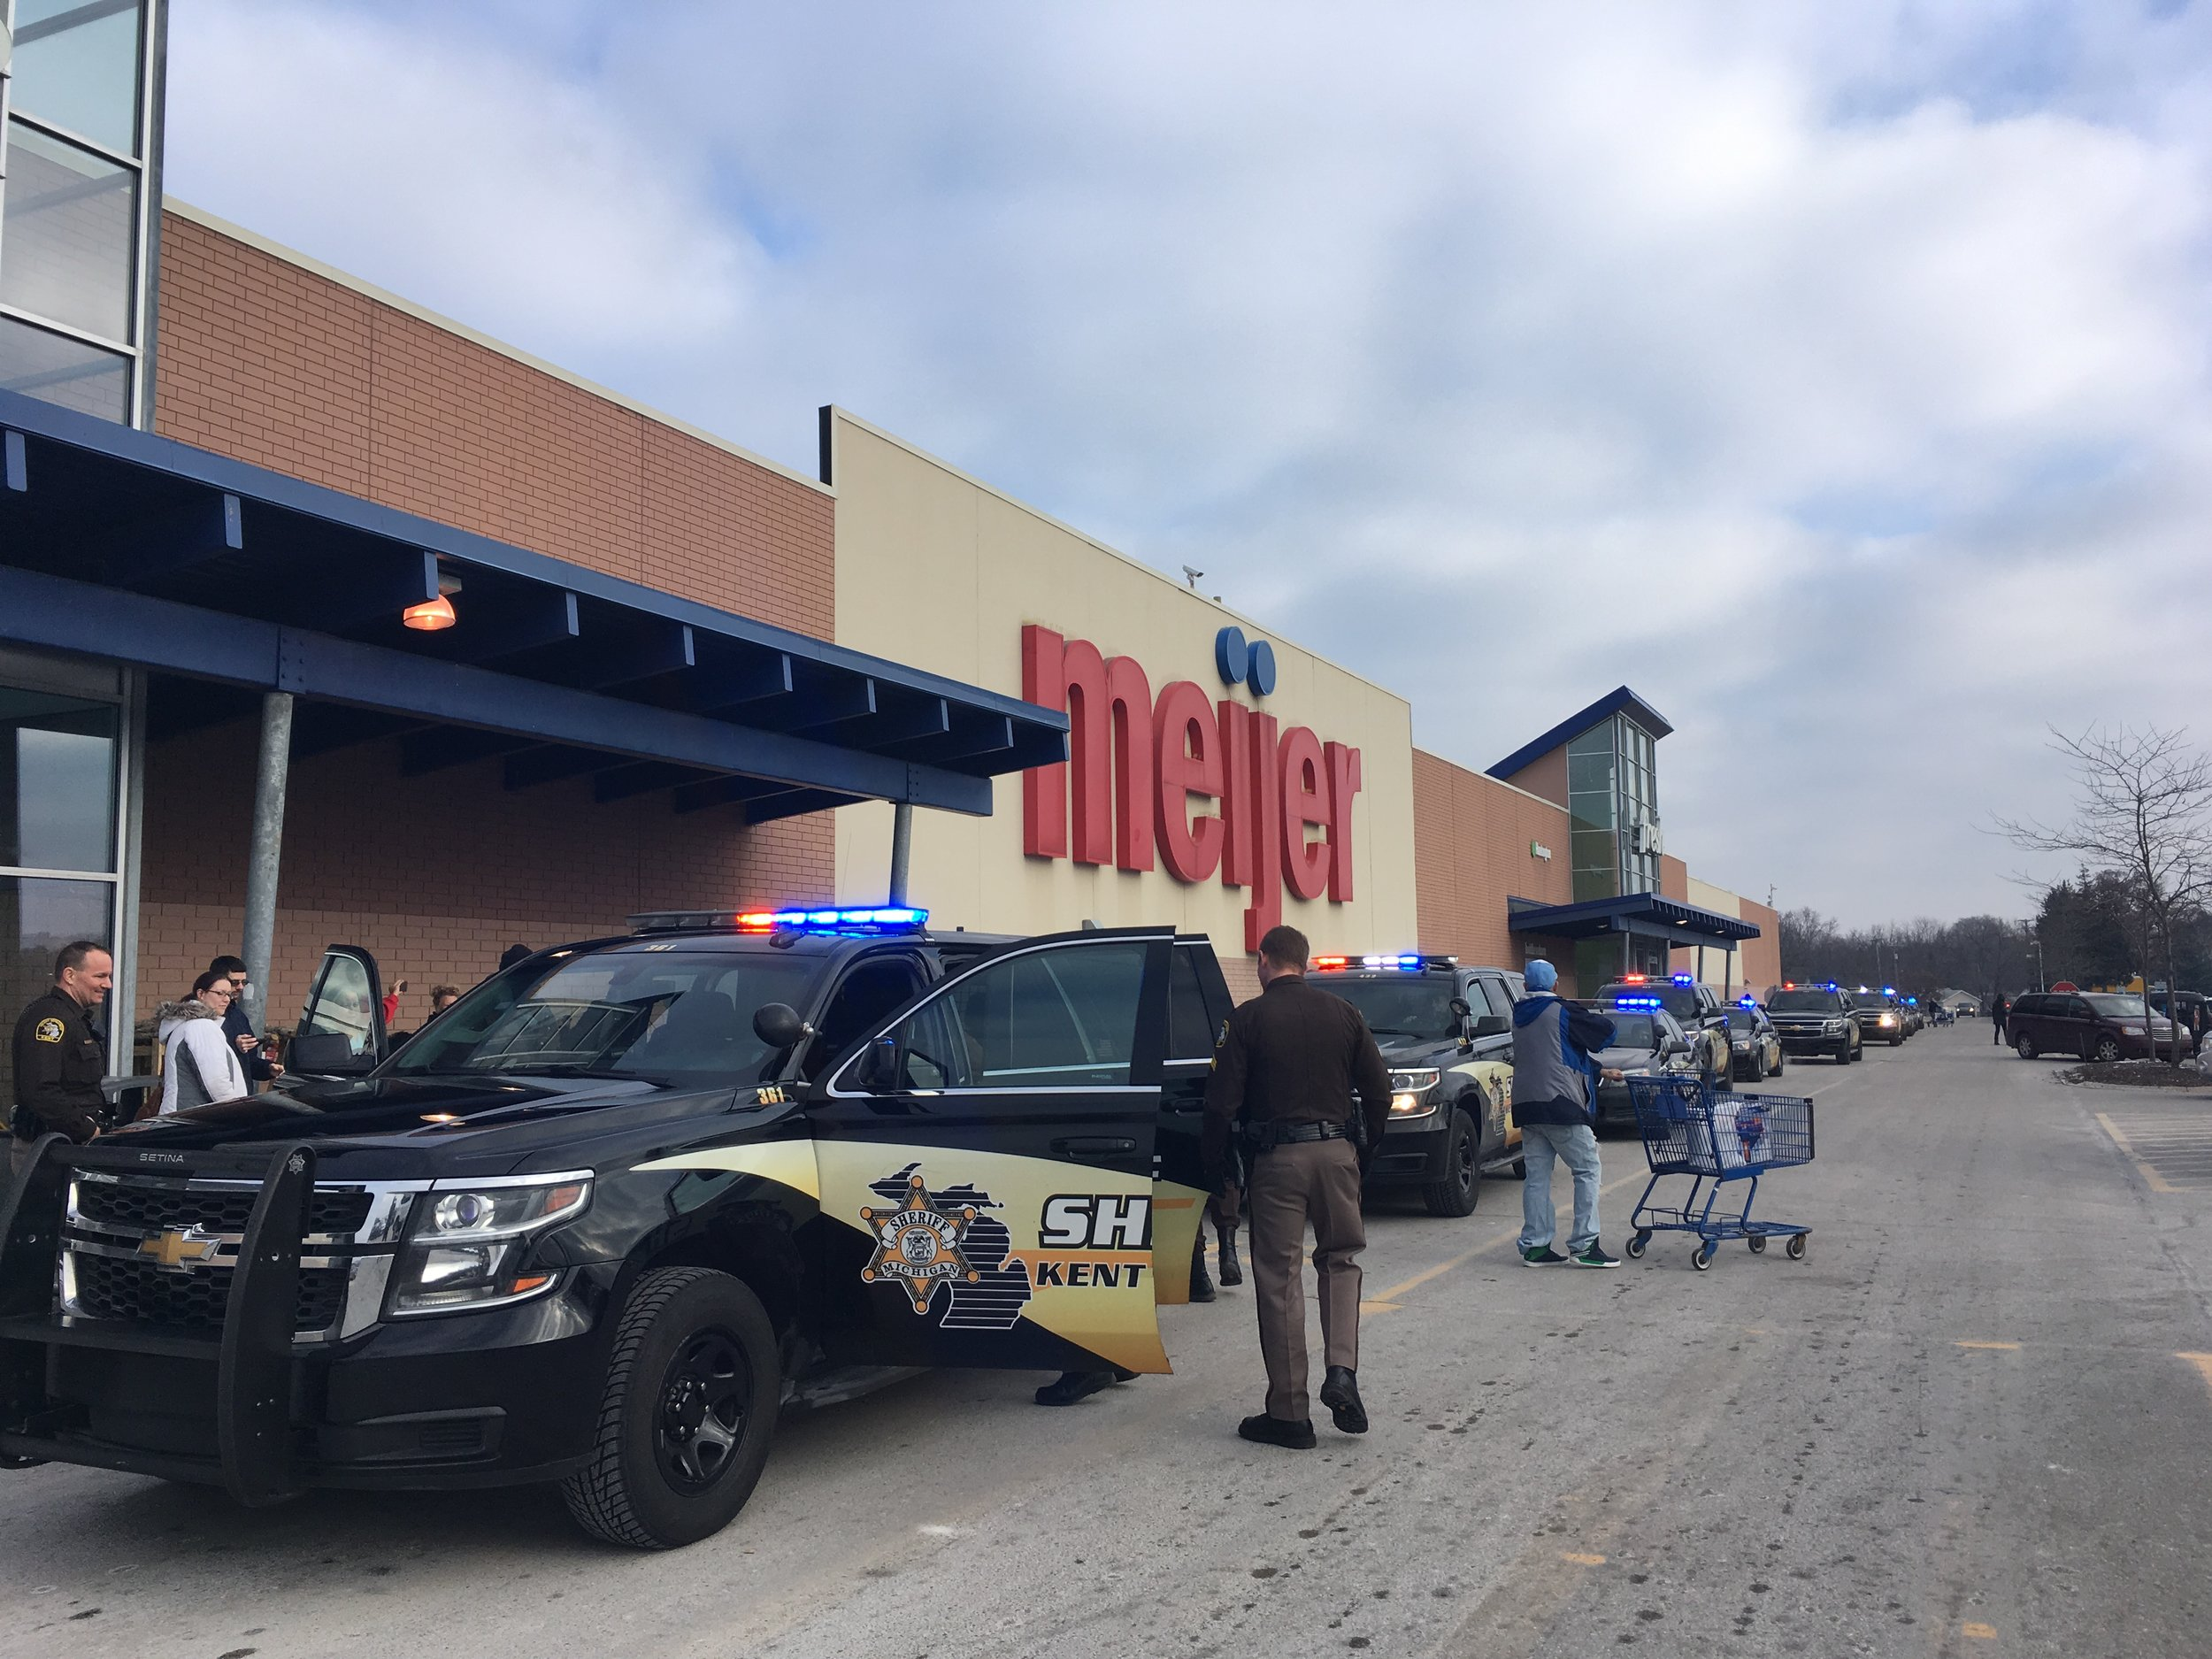 Nearly 40 children began their Christmas shopping with Sheriff deputies with a ride around the parking.